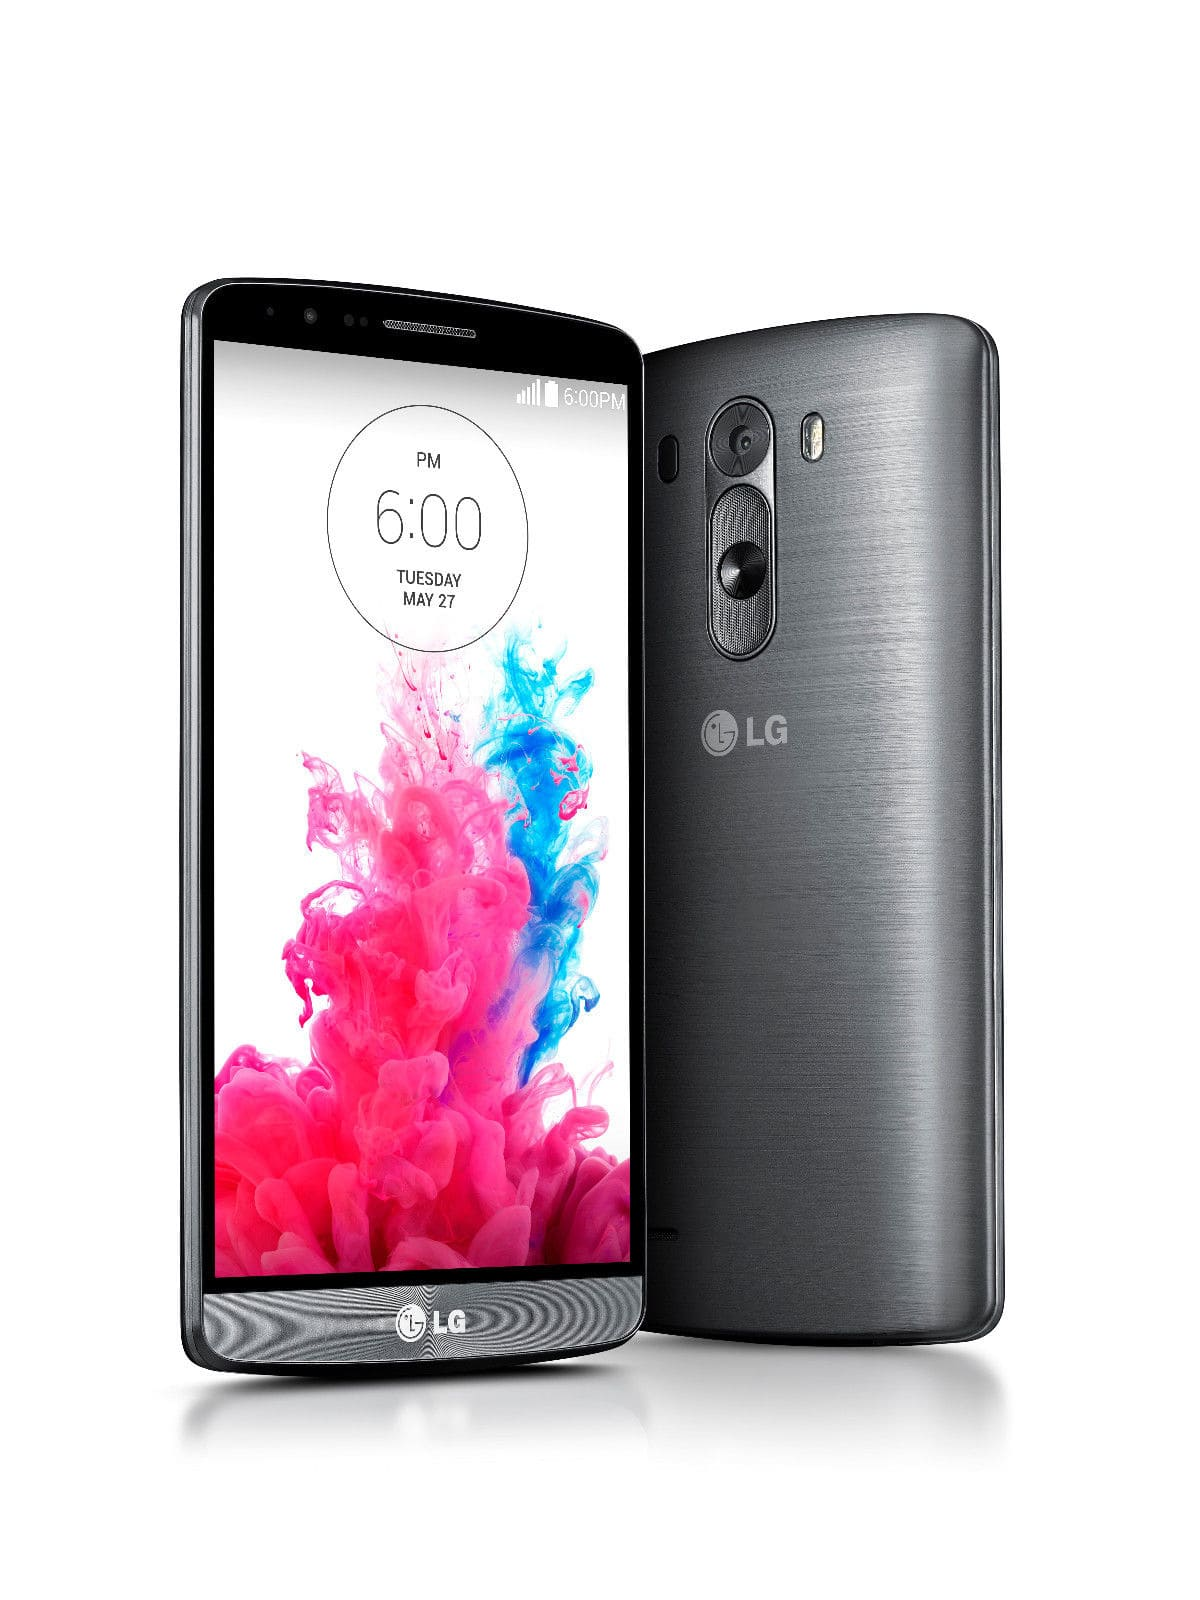 LG G3 D850 - 32GB - 4G LTE (AT&T - Unlocked) Android Smartphone $90 + free shipping (refurbished)